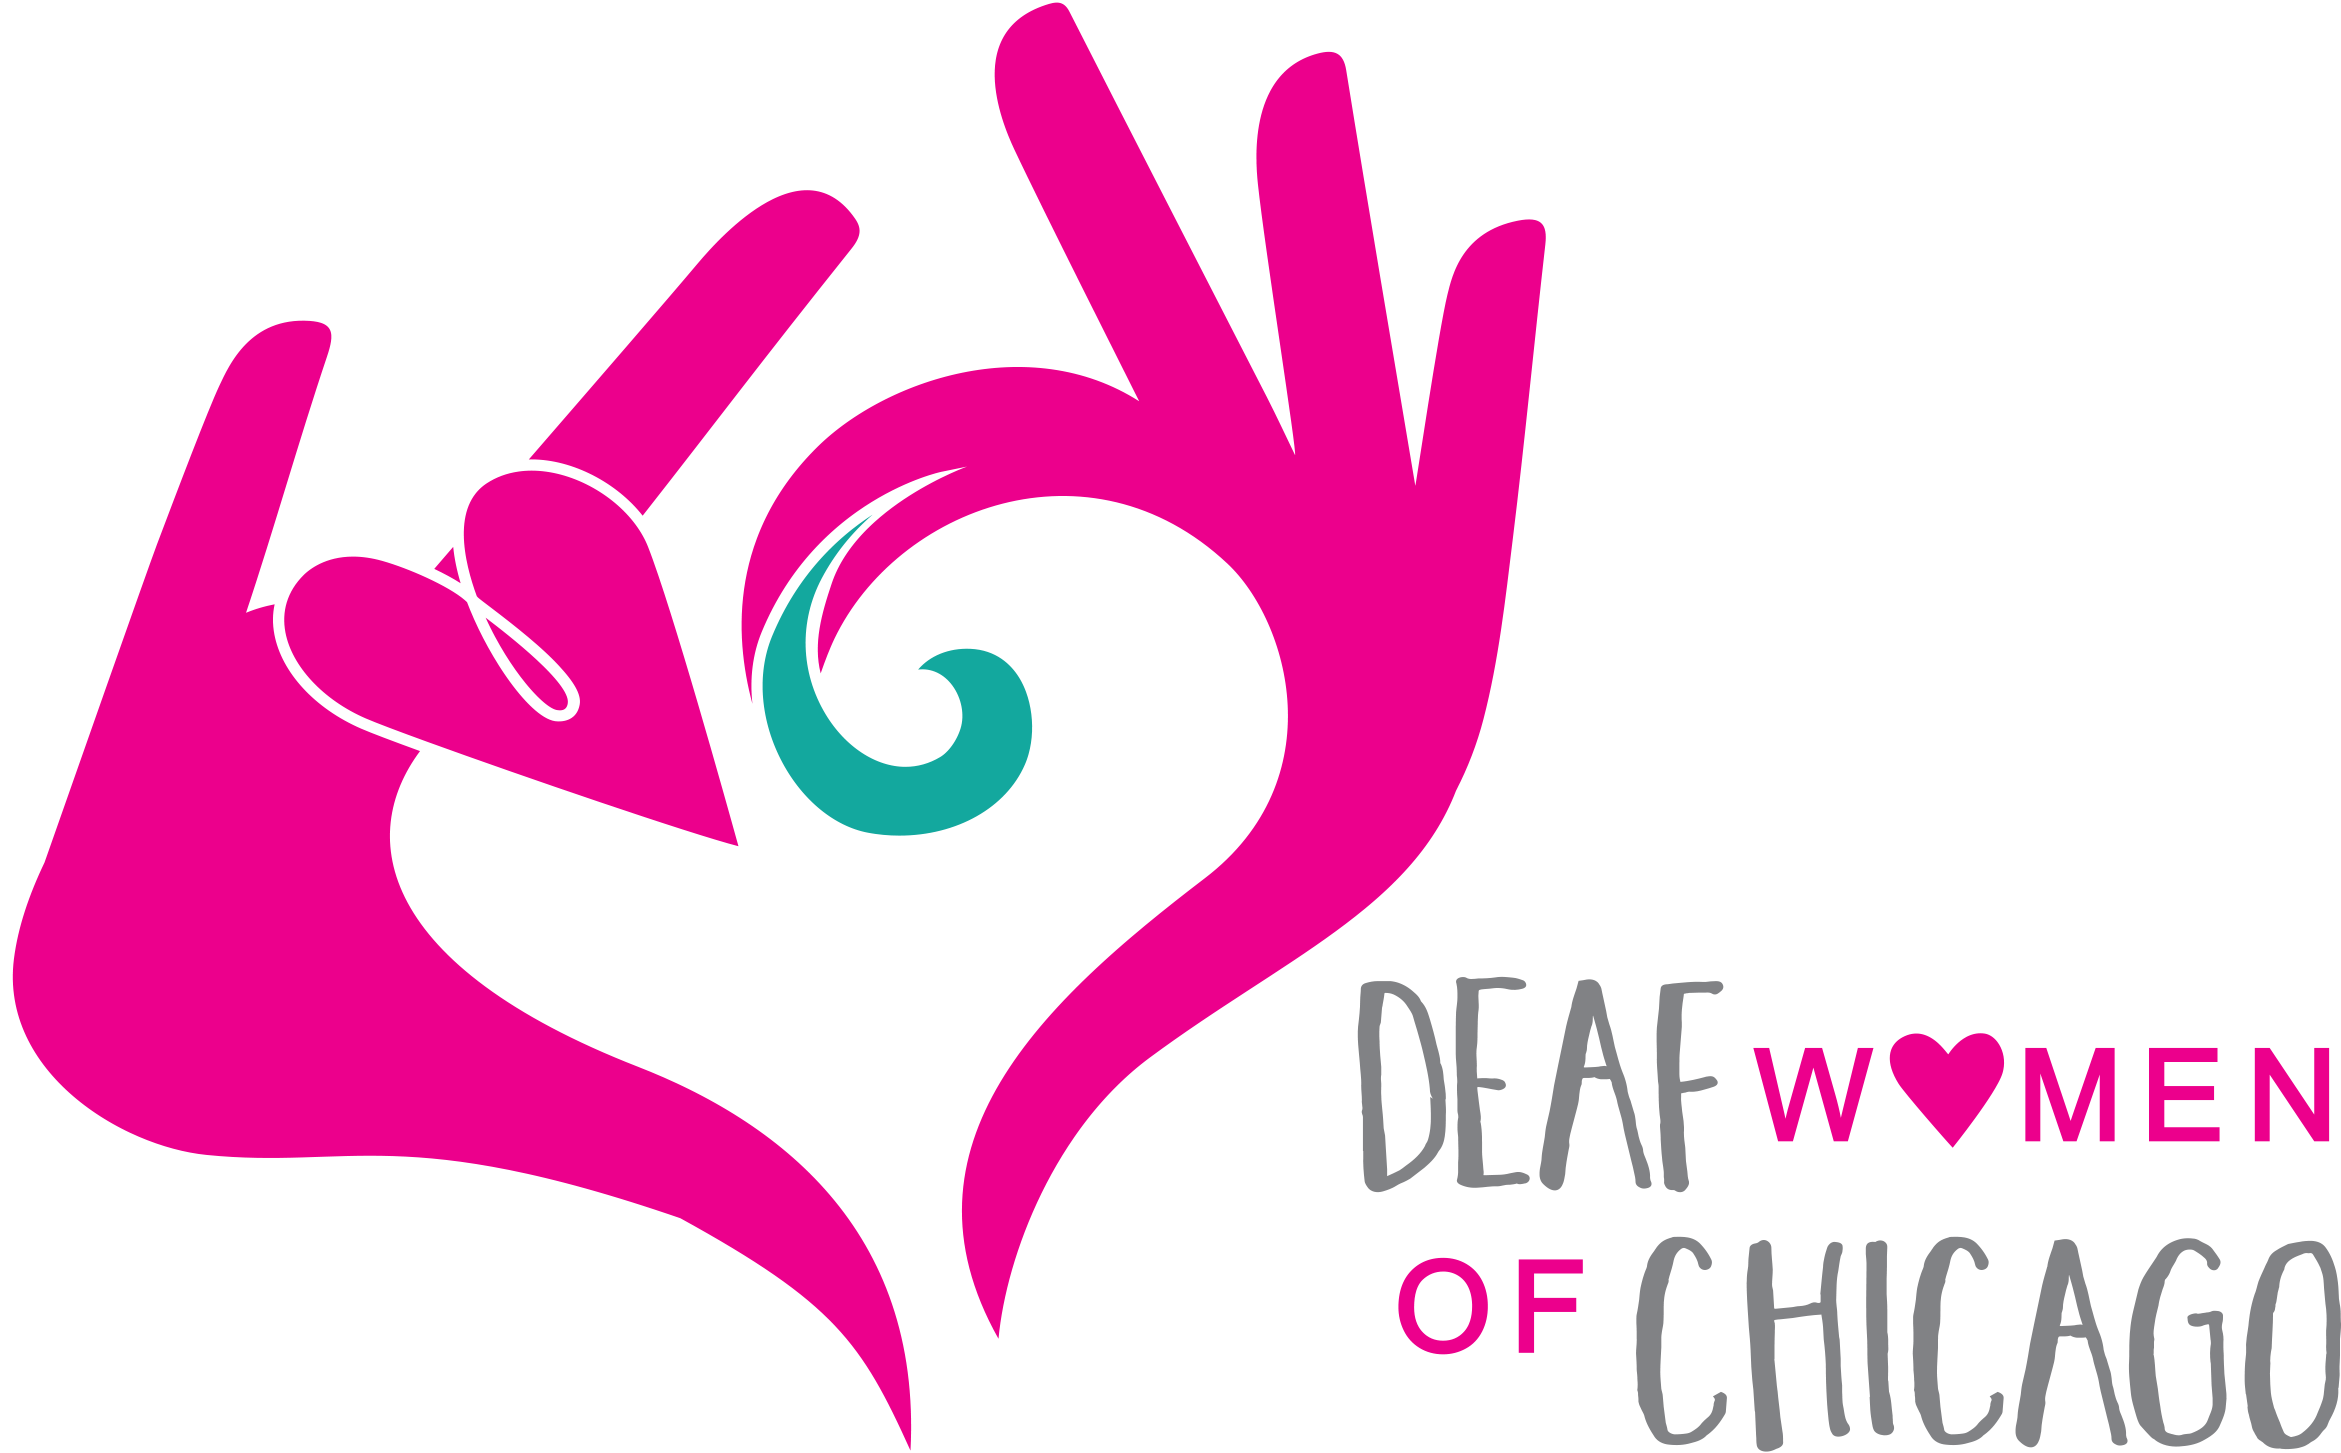 """Pink abstract handshapes one shaped in ILY and the other with index finger down and other three fingers out, both hands together make a heart-like shape. Text: Deaf Women of Chicago"""""""